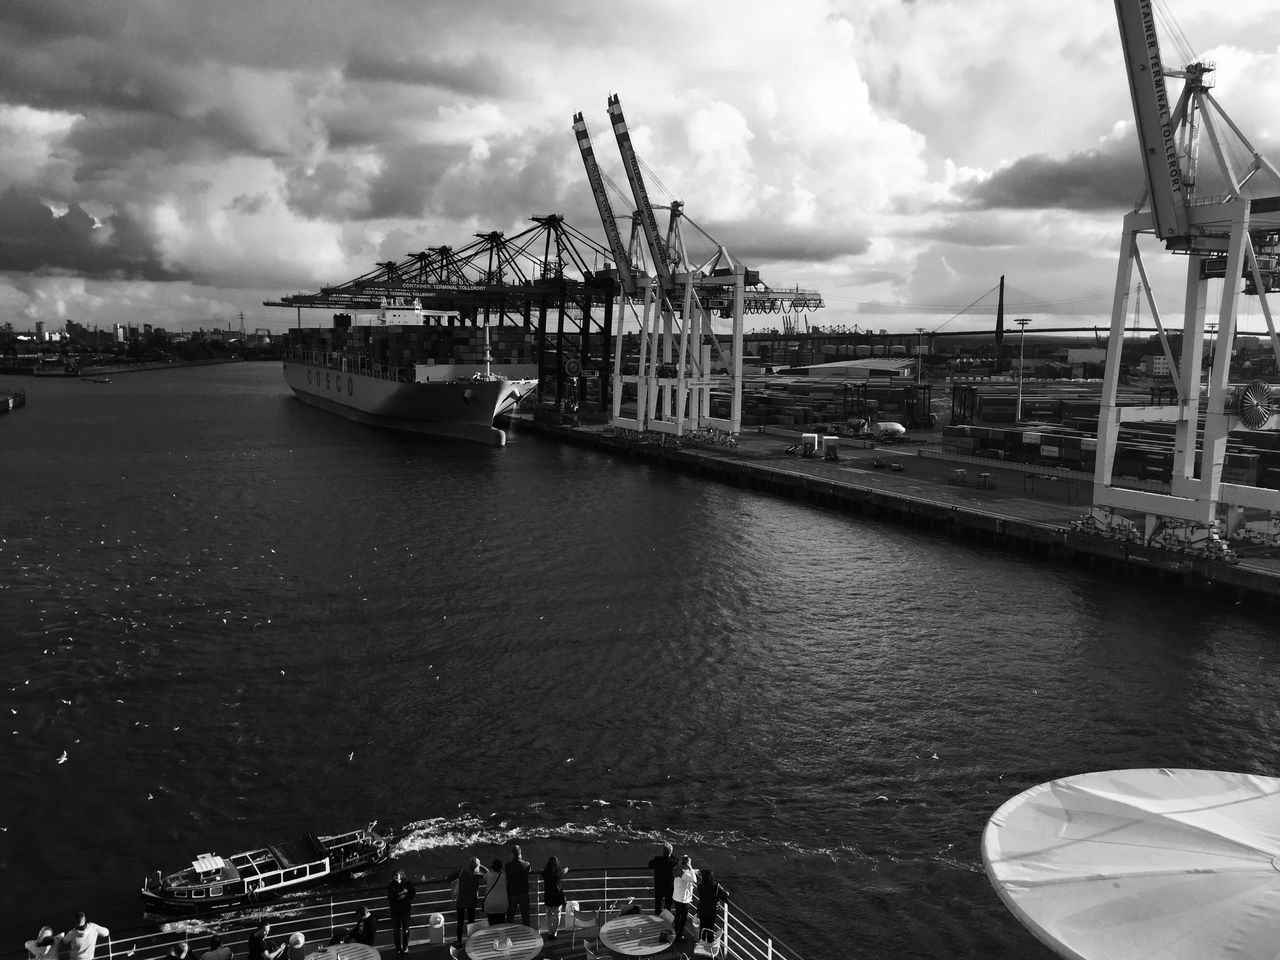 sky, cloud - sky, transportation, nautical vessel, harbor, built structure, crane - construction machinery, water, commercial dock, architecture, outdoors, shipping, freight transportation, day, no people, industry, building exterior, sea, city, shipyard